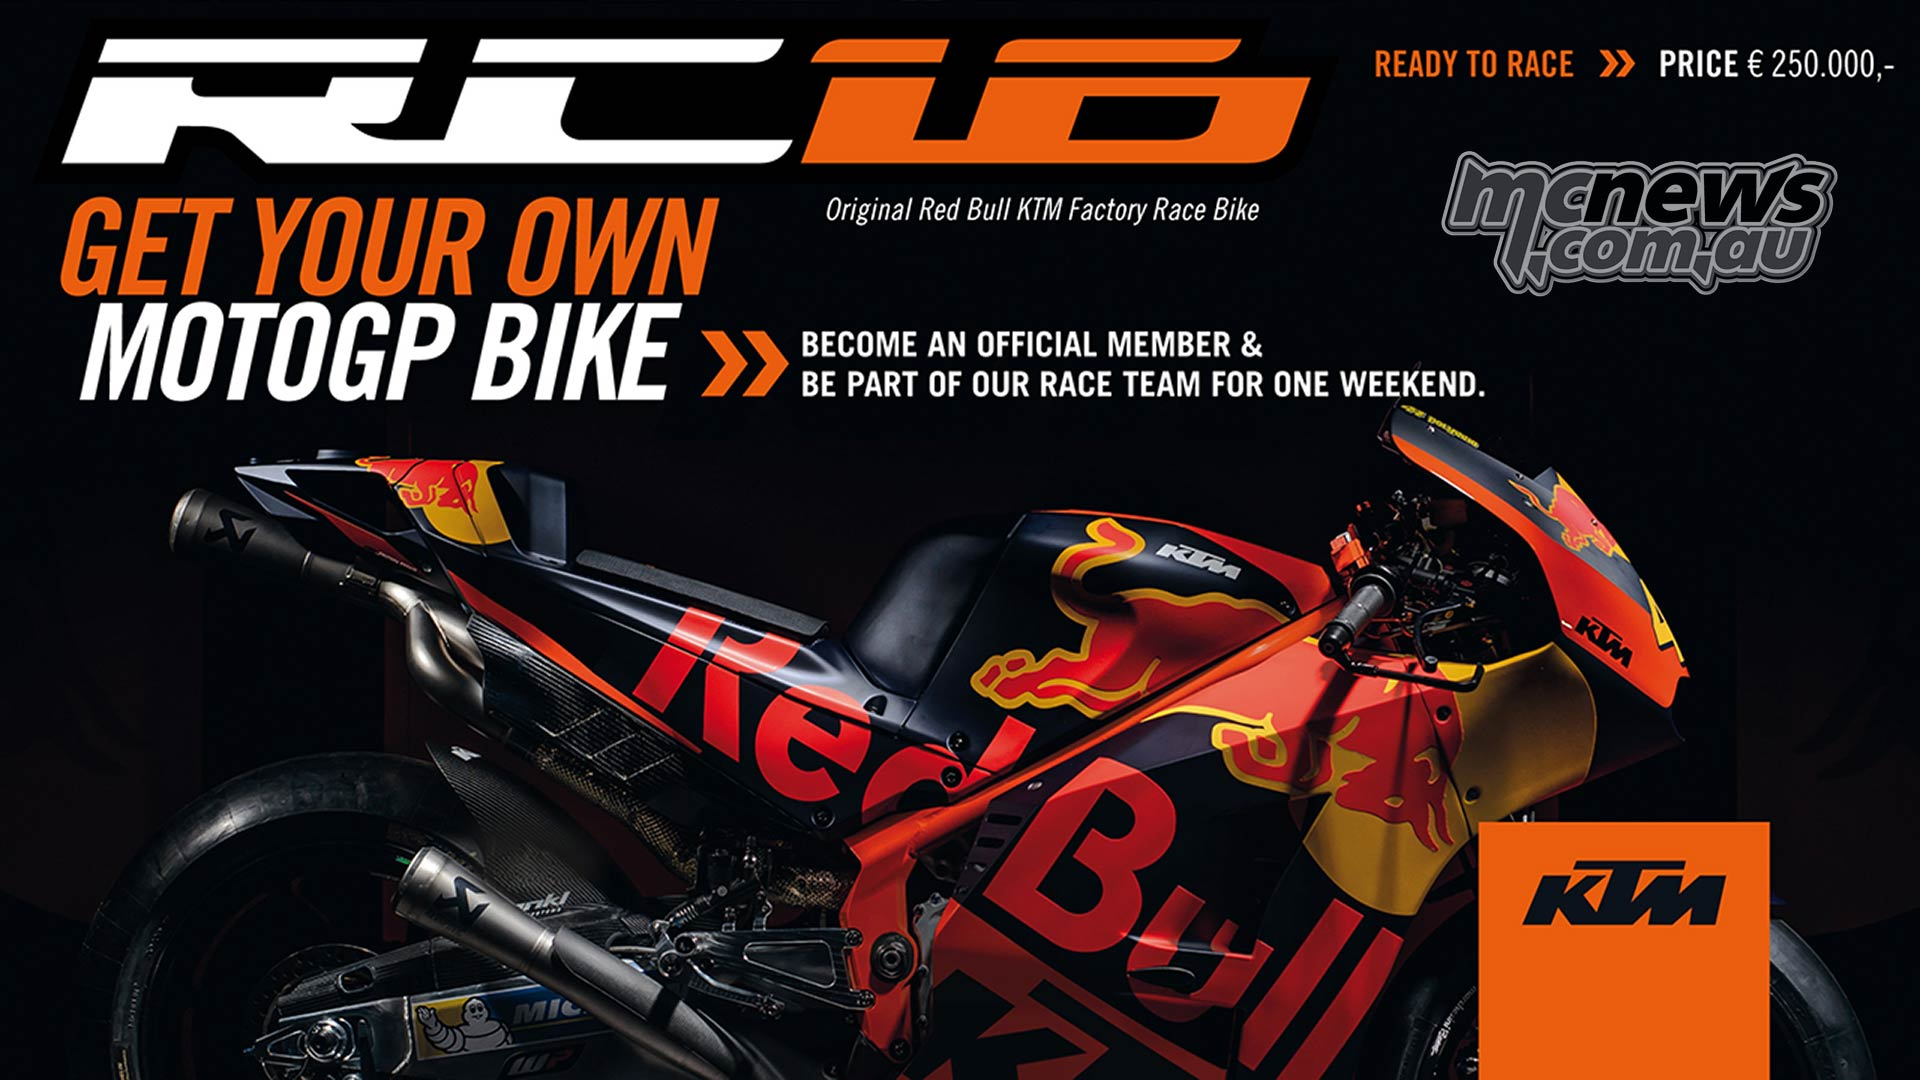 Ktm Offer Genuine Ktm Rc16 Motogp Machines Up For Sale Motorcycle News Sport And Reviews